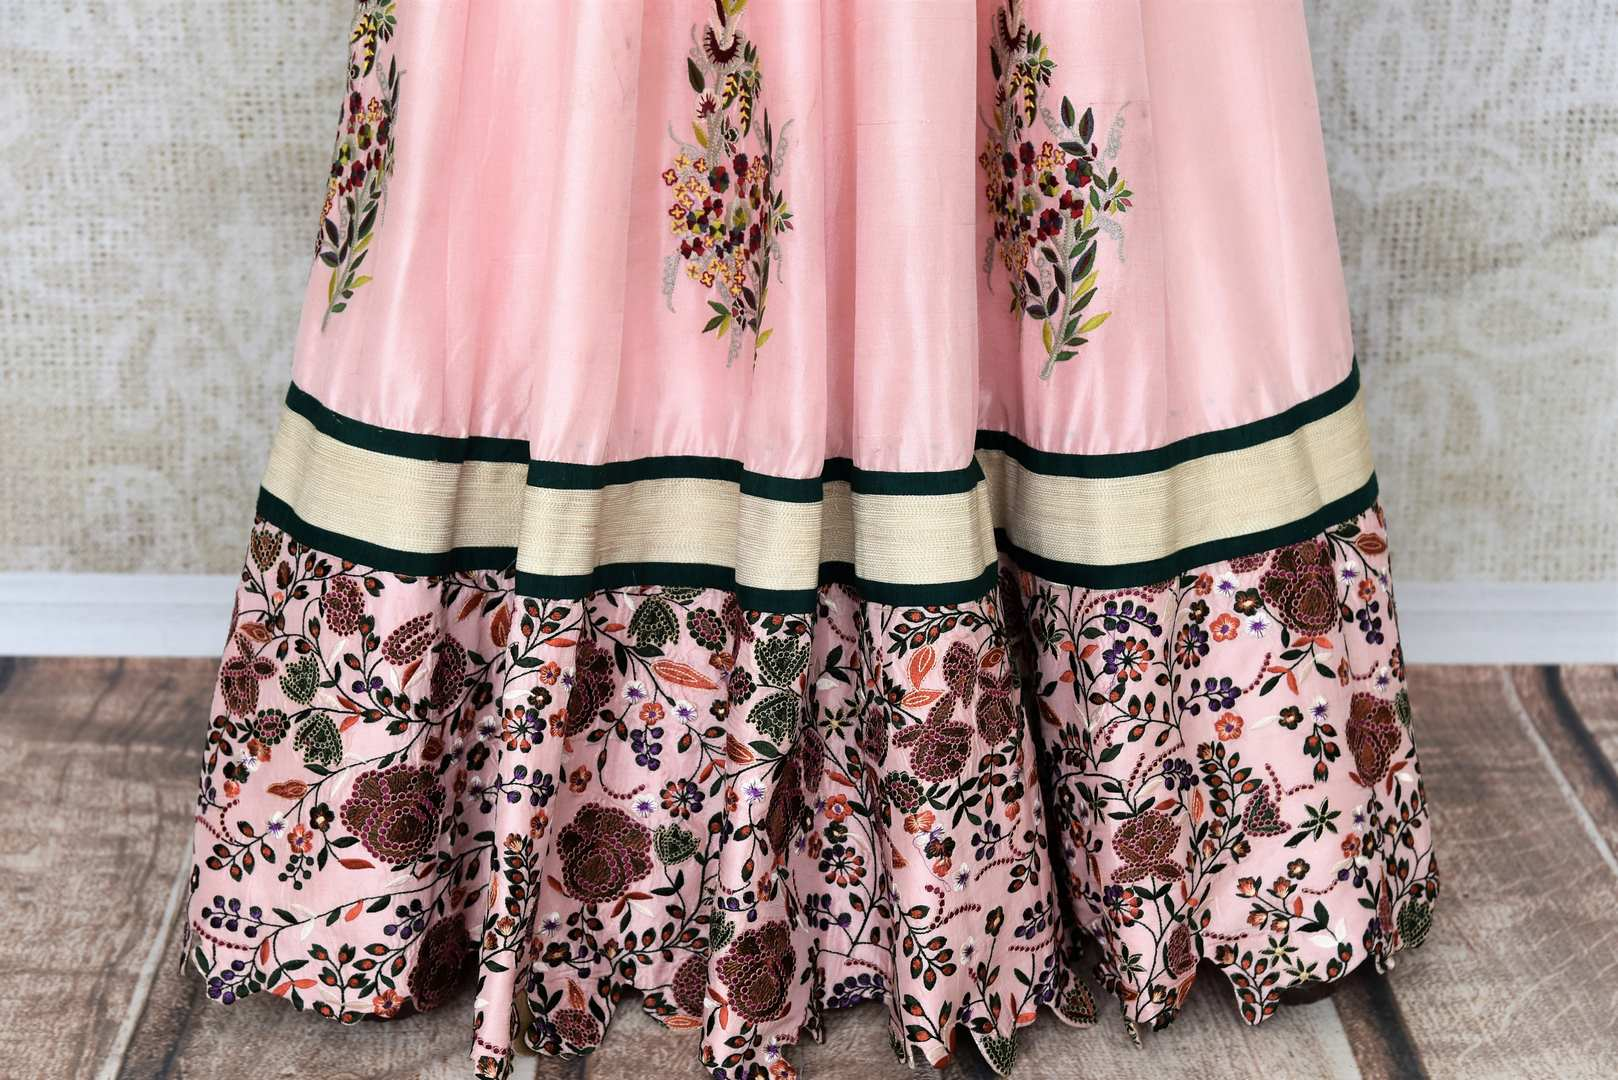 Buy beautiful pink printed and embroidered silk dress online in USA. Add brilliance to your Indian look with an exquisite range of designer dresses, suits available at Pure Elegance exclusive clothing store in USA or shop online-bottom